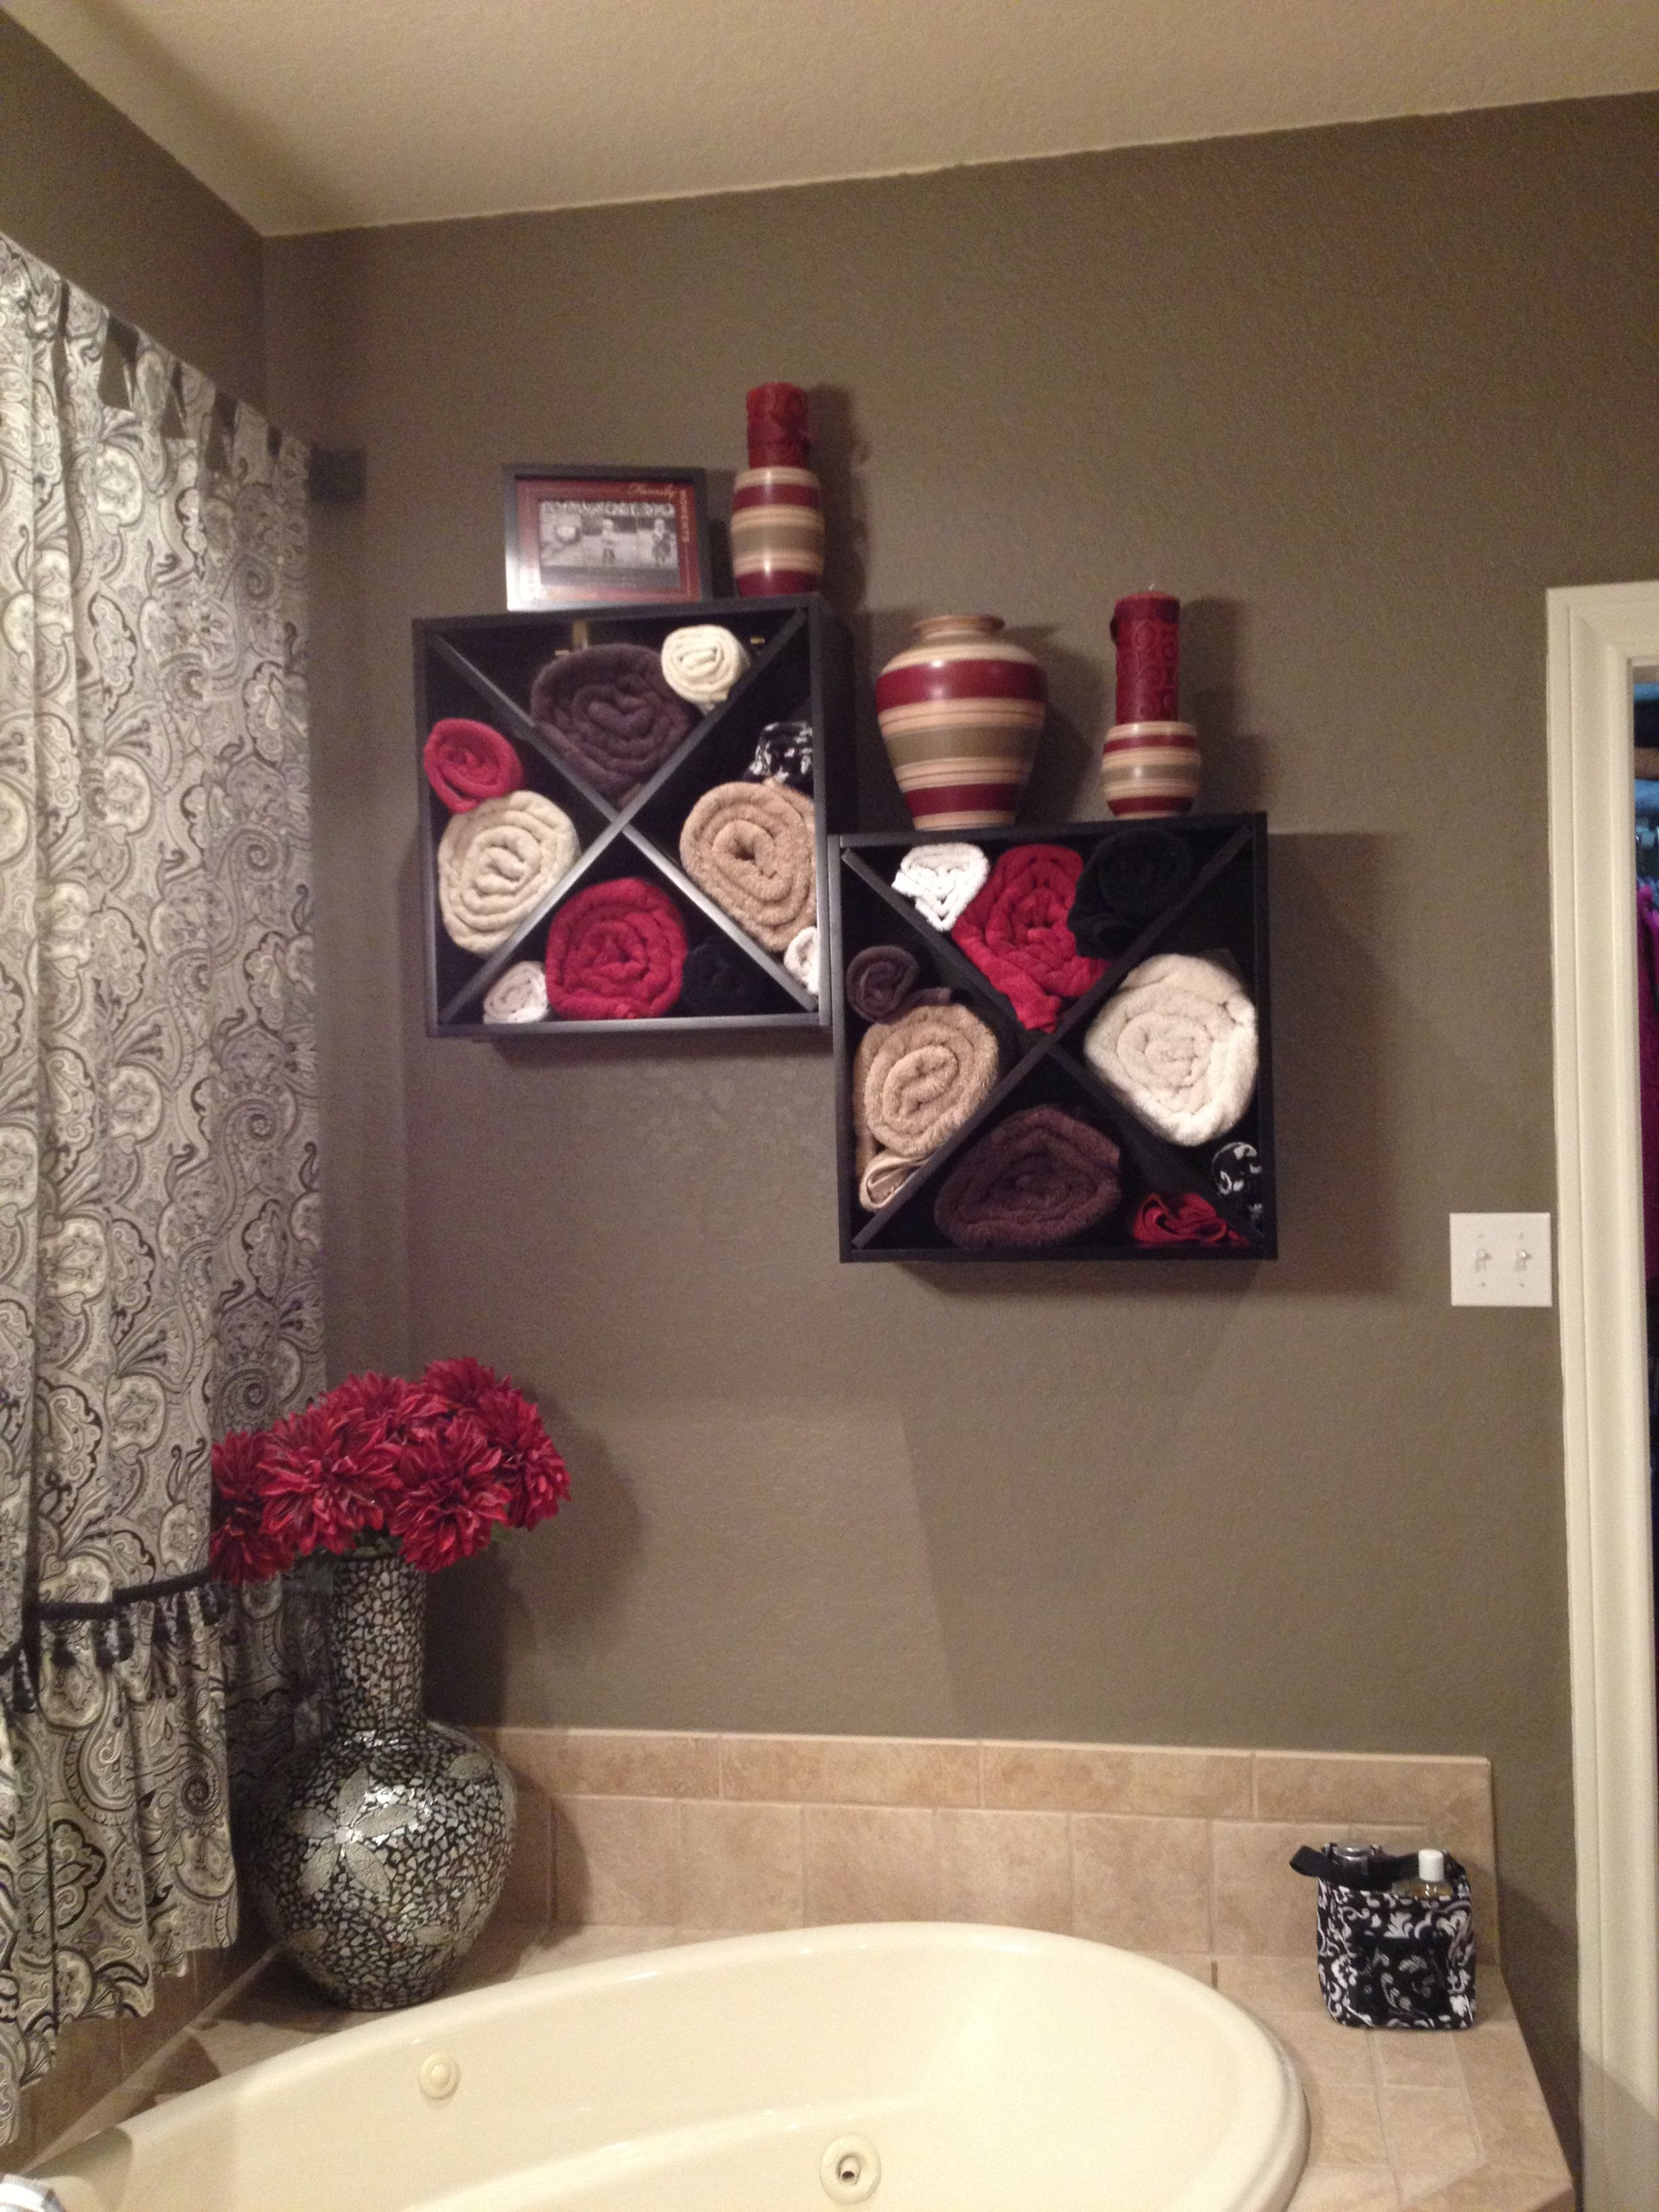 Decorative towel Racks for Bathrooms Inspirational Wine Rack Mounted to the Wall Over A Large Garden Tub Great